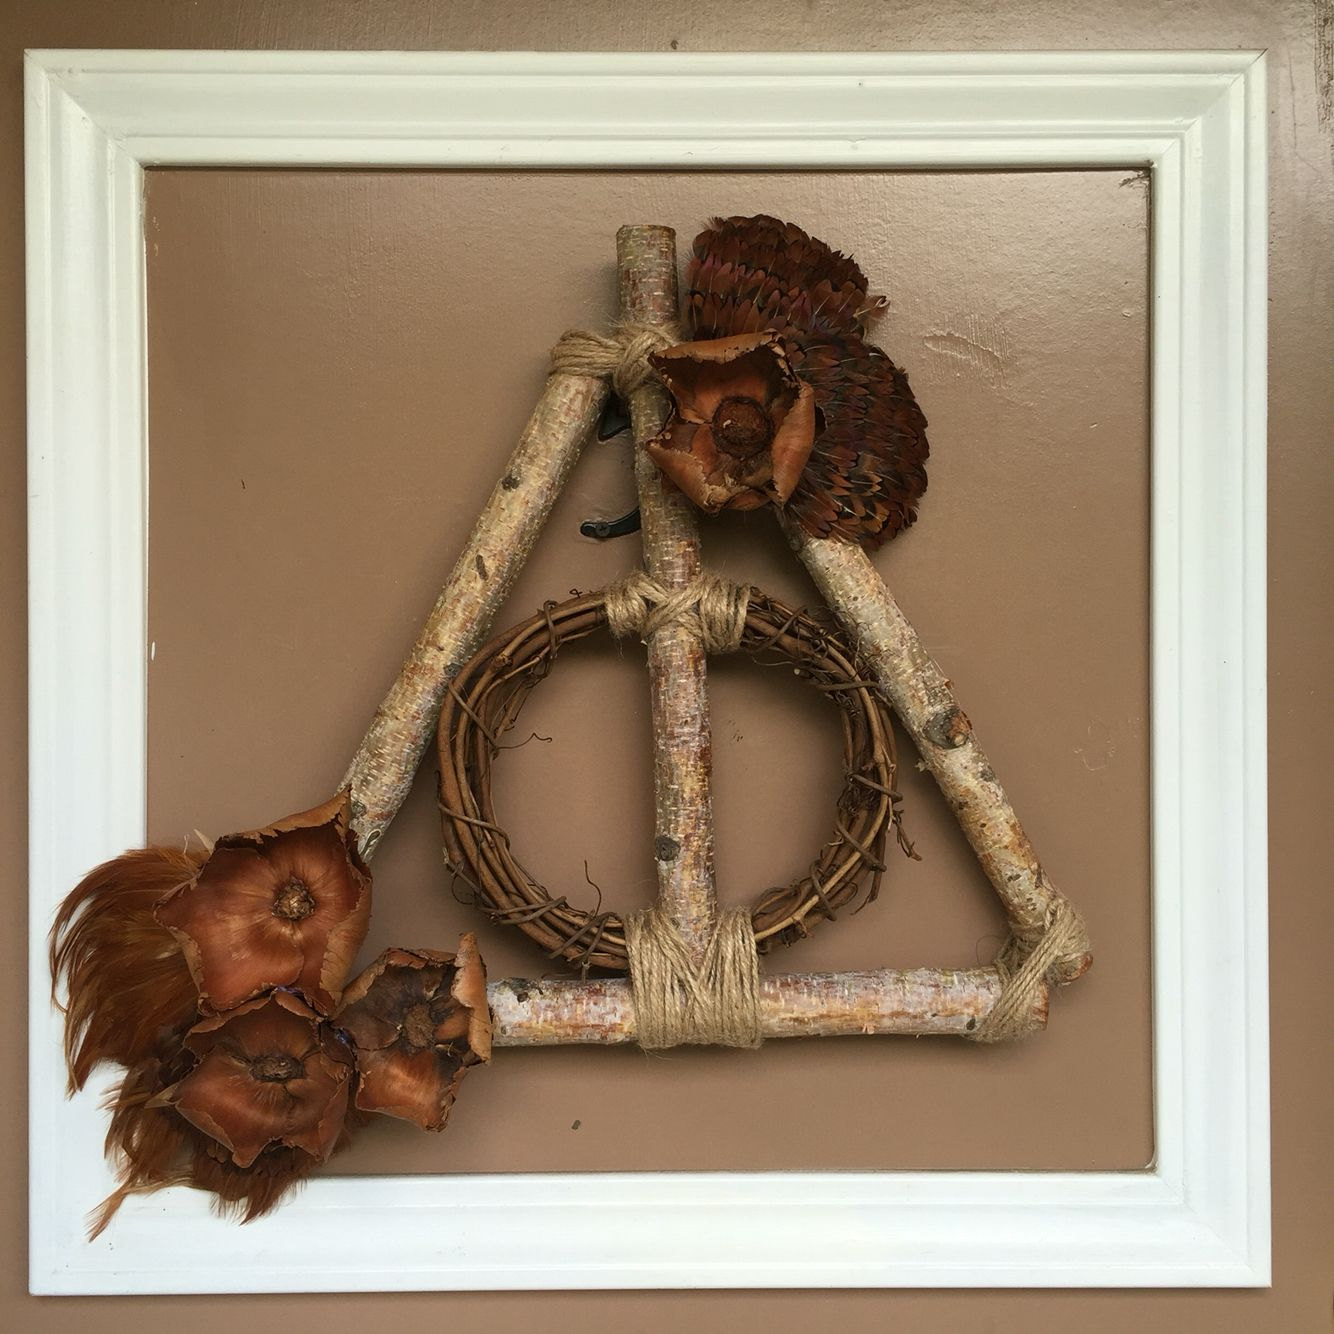 harry potter wreath deathlyhallows harrypotter. Black Bedroom Furniture Sets. Home Design Ideas